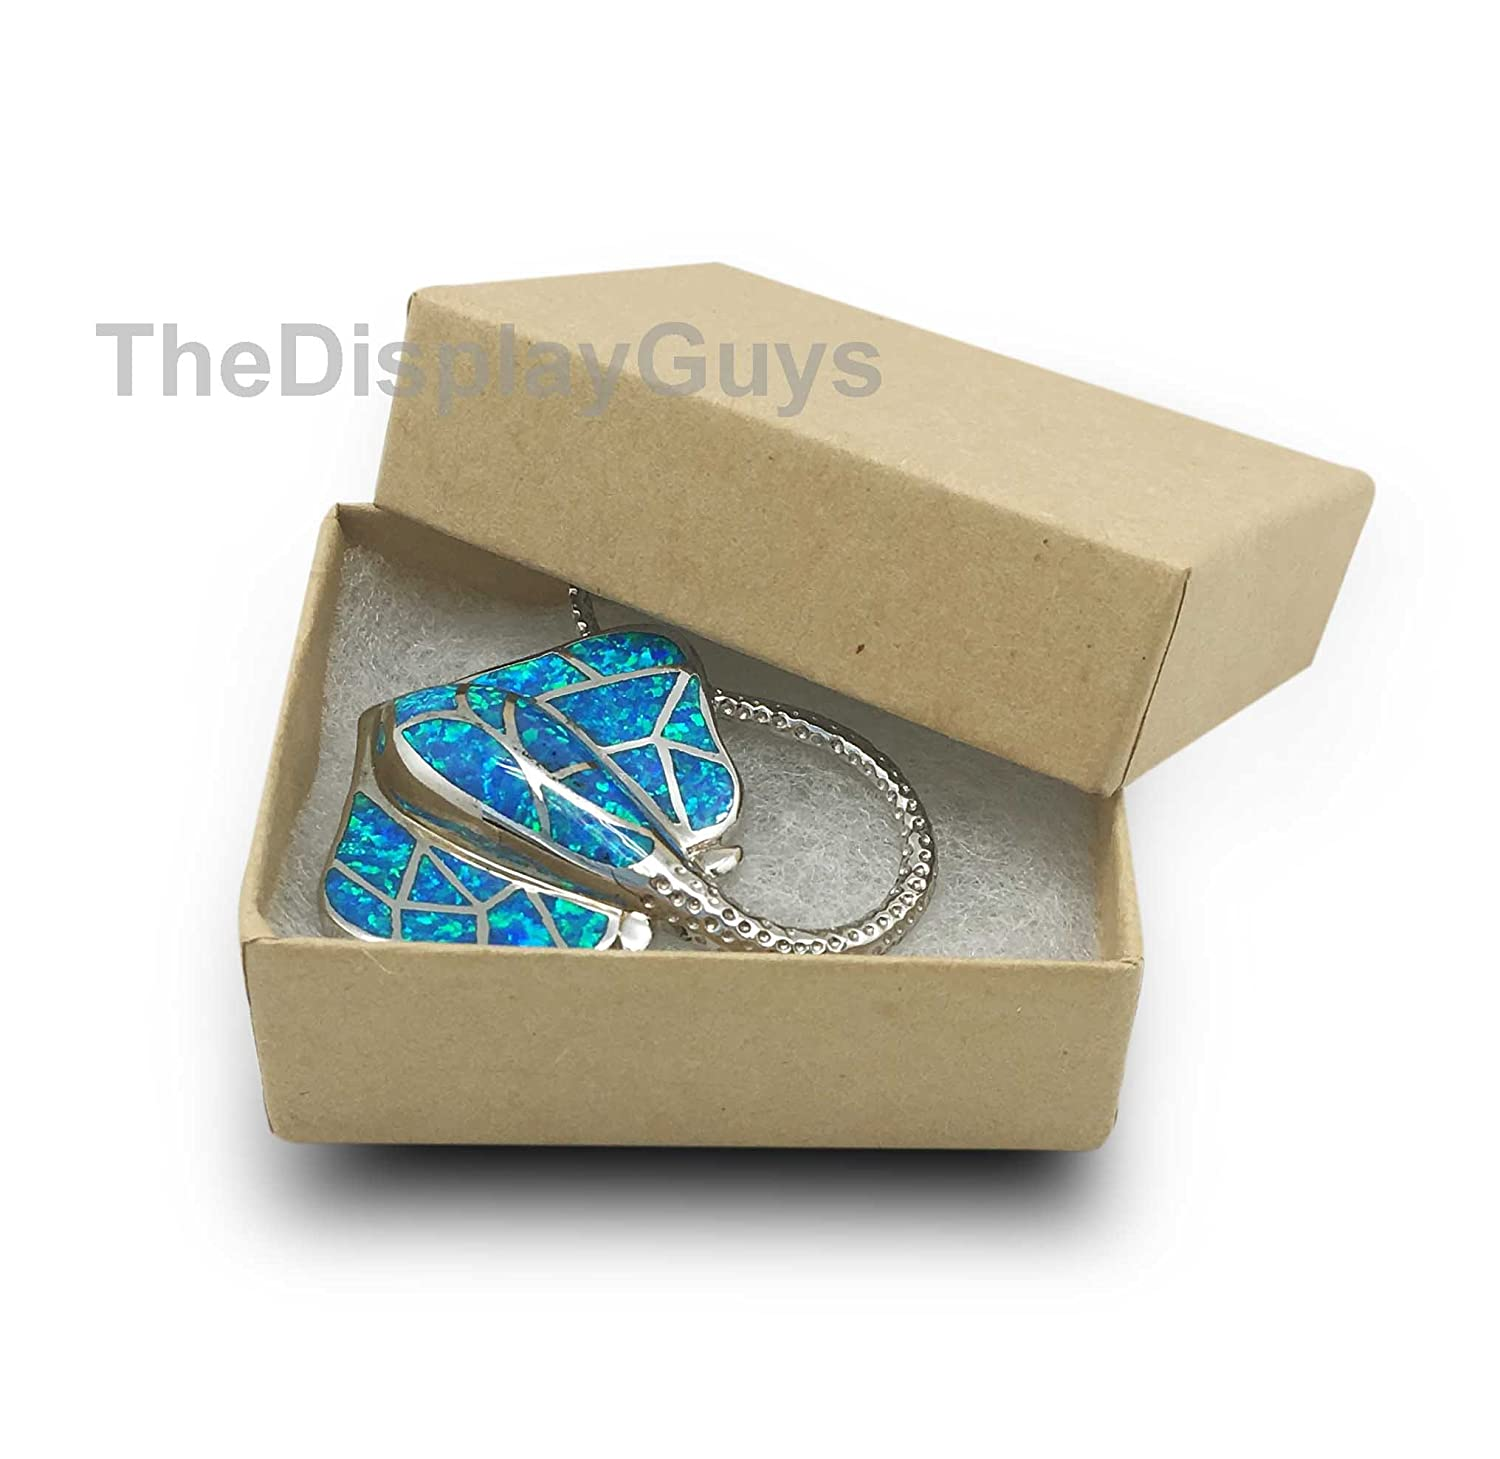 The Display Guys Pack of 25 Cotton Filled Cardboard Paper Kraft Jewelry Box Gift Case - Kraft (3 3/4x3 3/4x2 inches #34) JPI Display